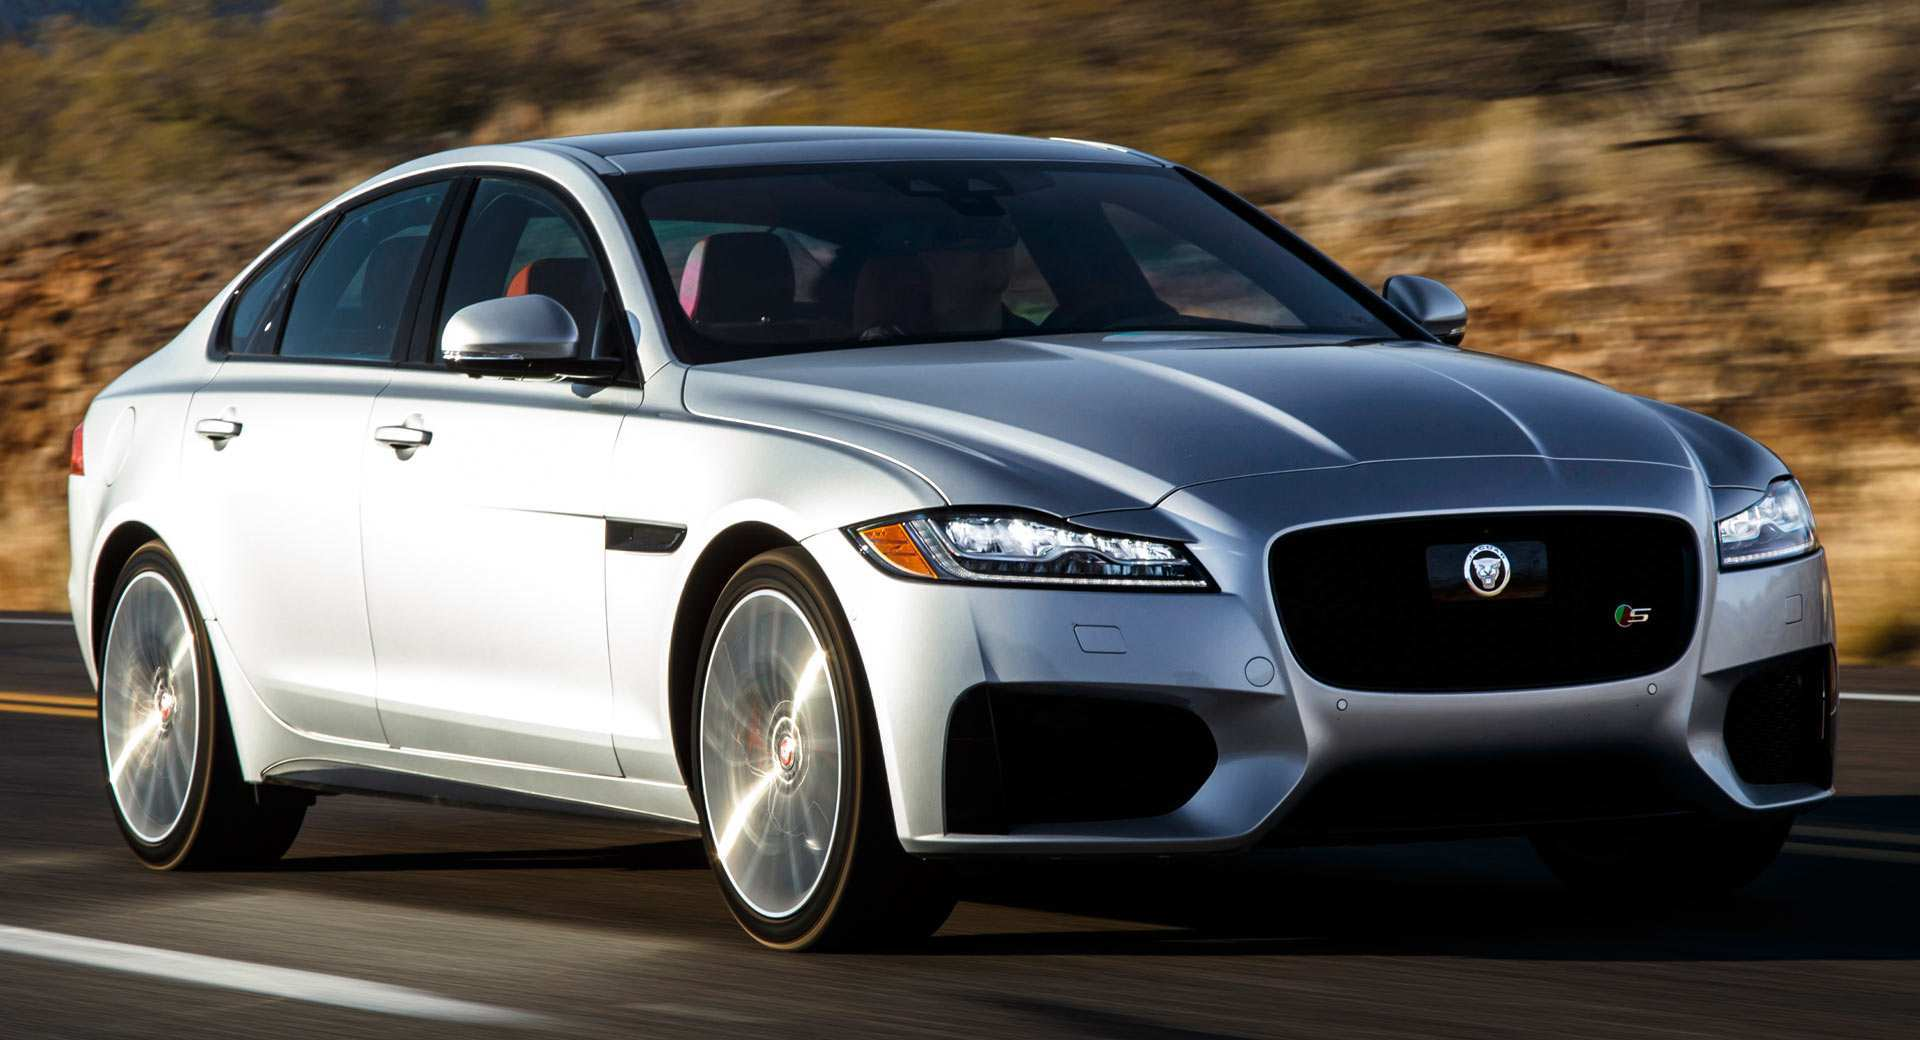 14 Great Jaguar Xe 2020 Release Date Pictures for Jaguar Xe 2020 Release Date